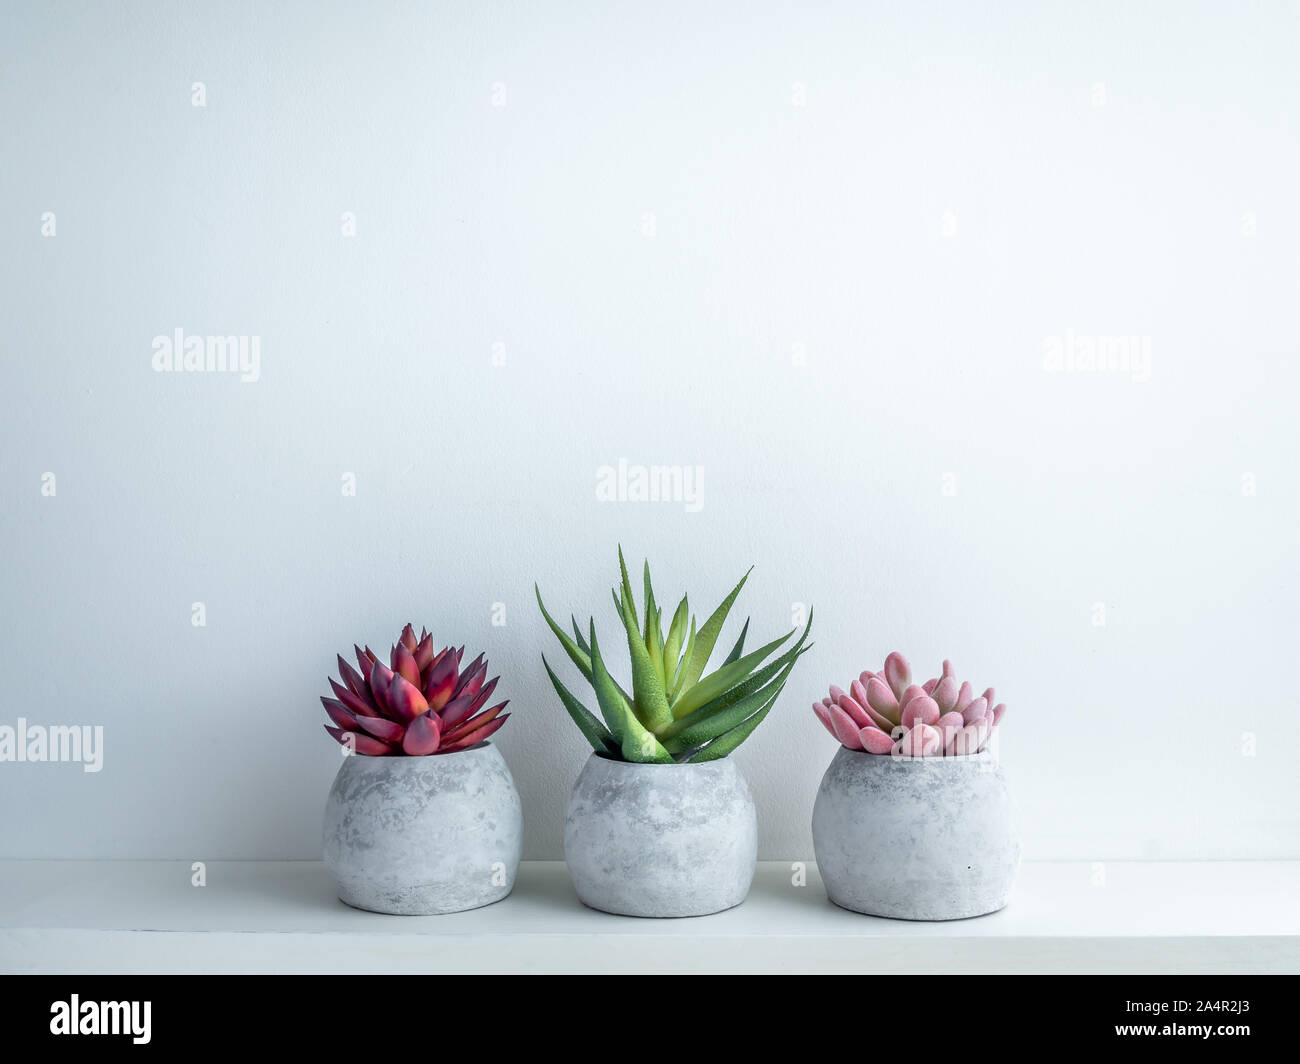 Concrete pots minimal style. Pink, red and green succulent plants in modern round concrete planters on wooden shelf isolated on white background with Stock Photo